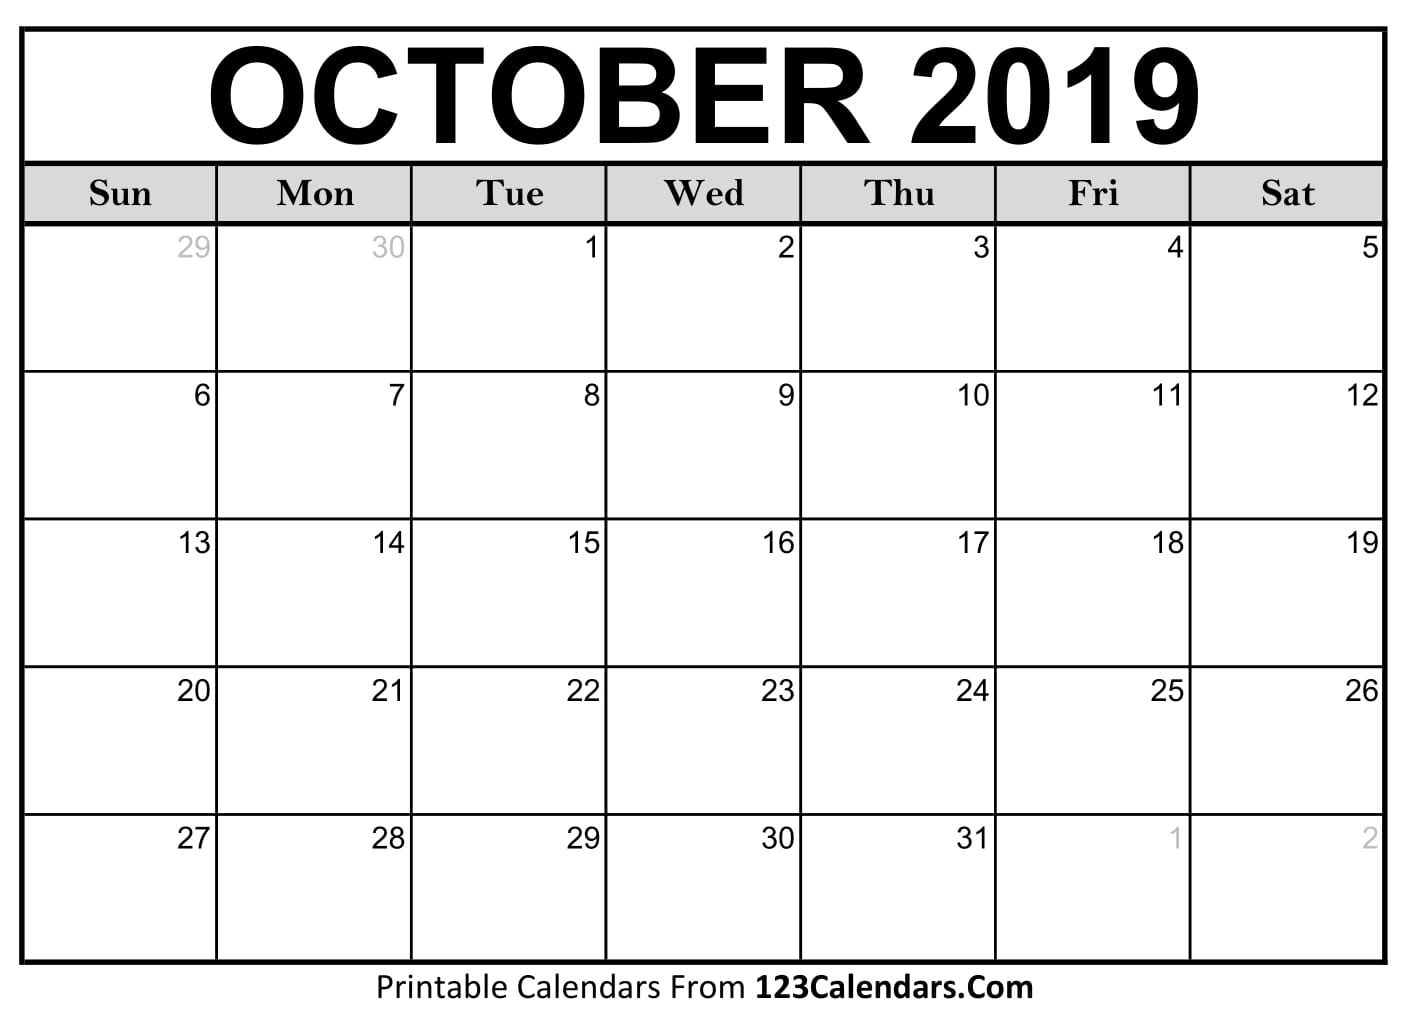 October Calendar 2018 Printable : Printable october calendar templates calendars